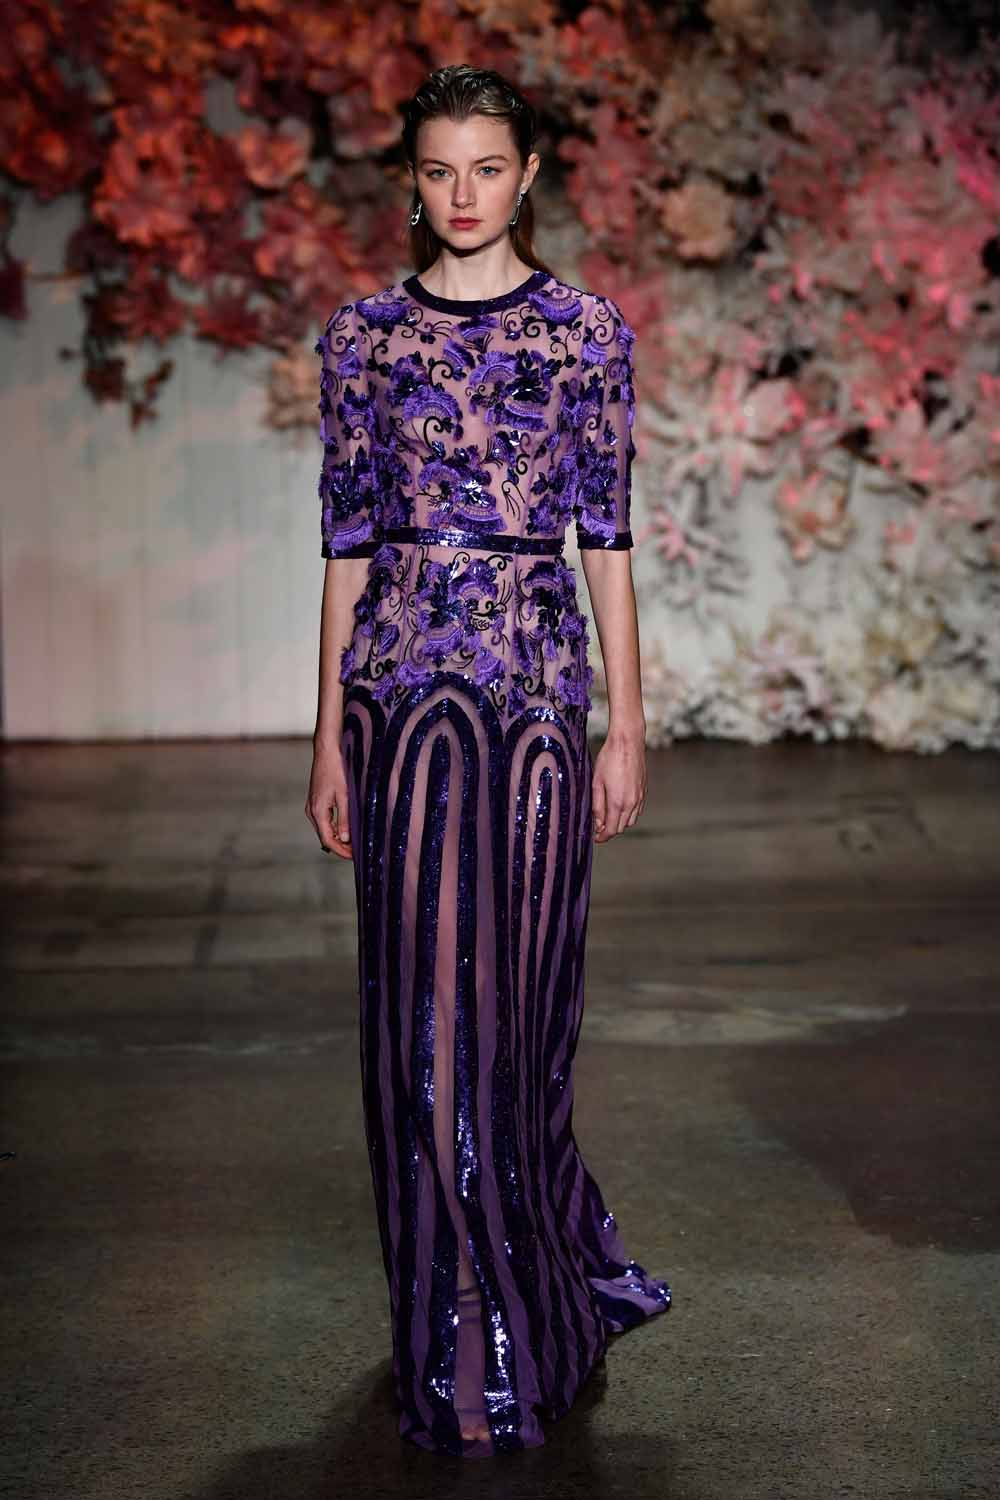 SYDNEY, AUSTRALIA - MAY 15: A model walks the runway during the Steven Khalil show at Mercedes-Benz Fashion Week Resort 18 Collections at Elston Room on May 15, 2017 in Sydney, Australia. (Photo by Stefan Gosatti/Getty Images)